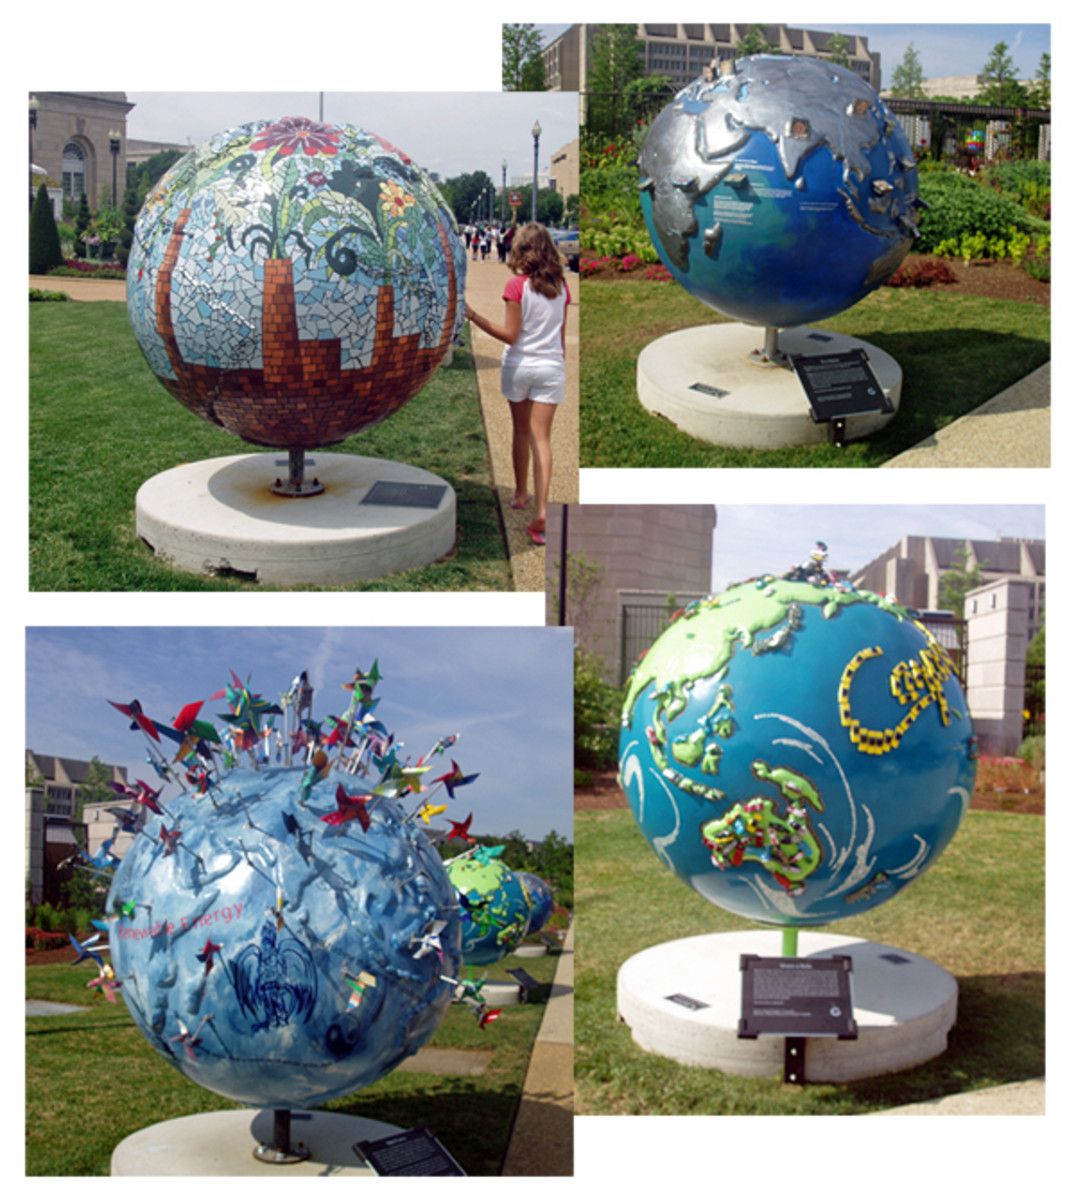 - Our visit was in 2008 during the Cool Globes exhibit. Below are photos I took while on our visit to the Botanic Garden 2008.